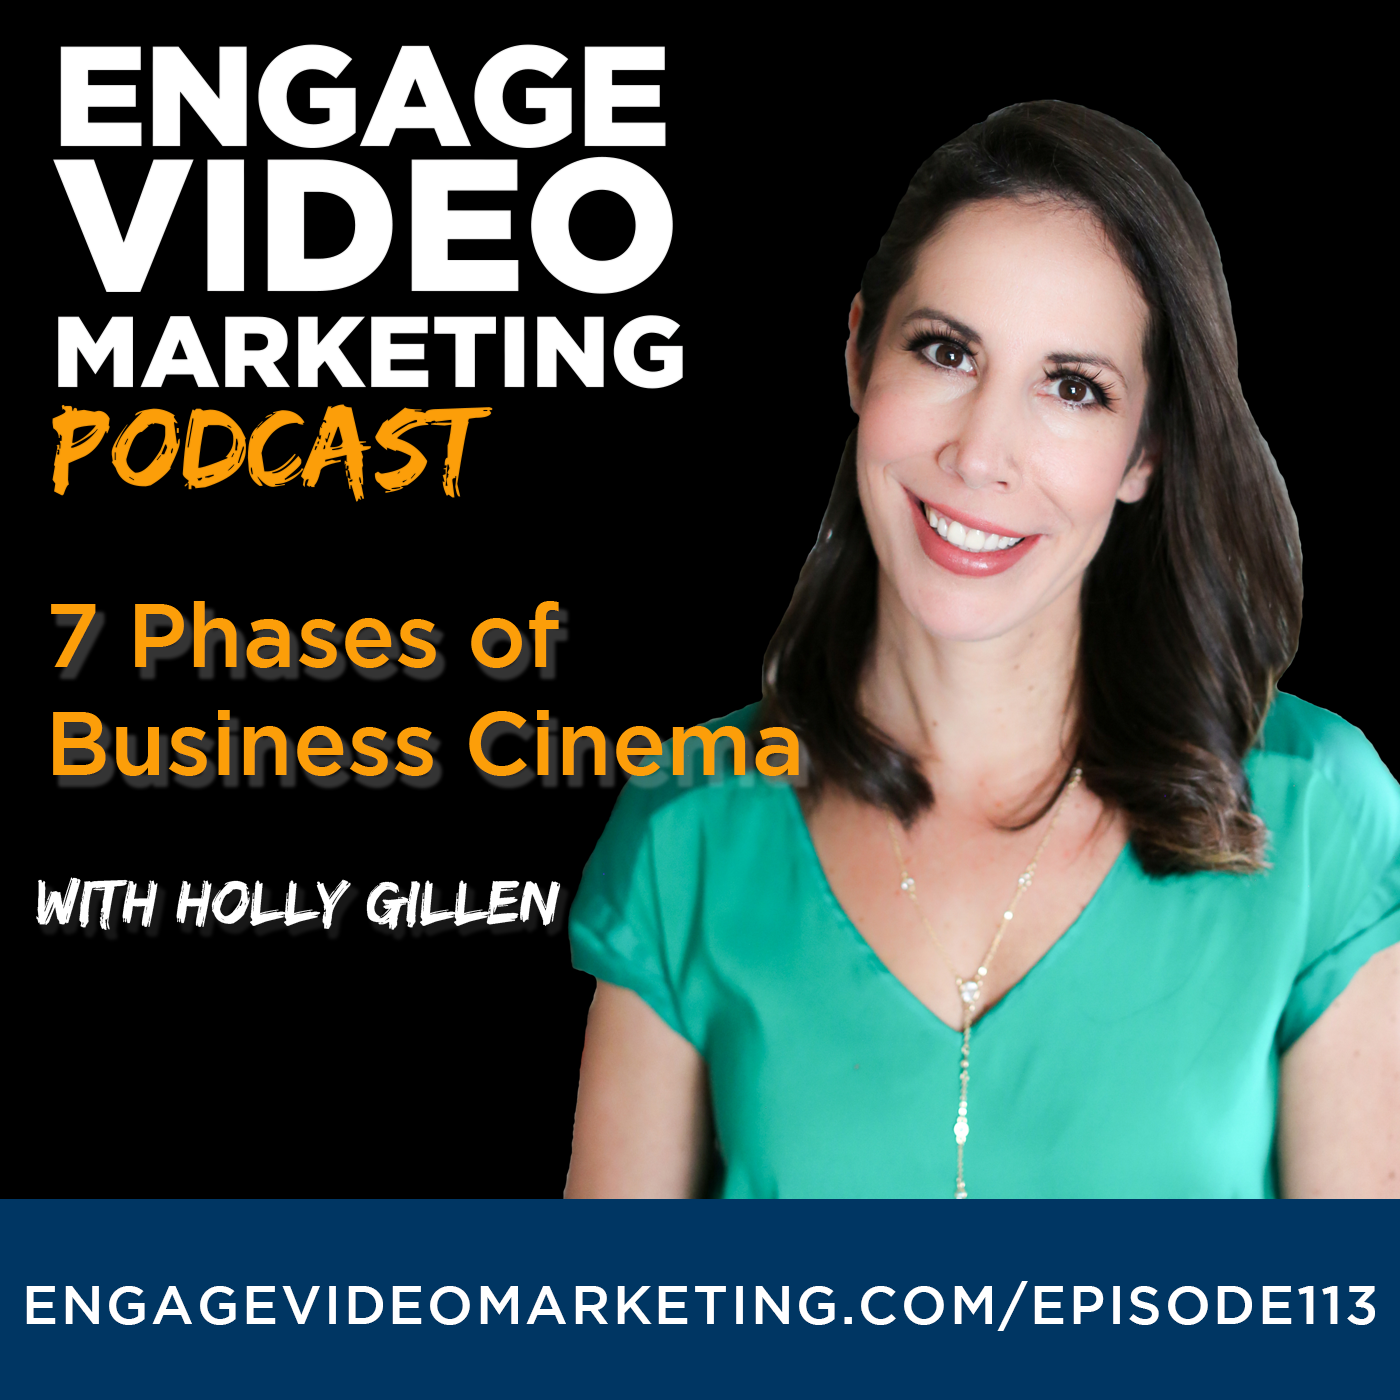 7 Phases of Business Cinema with Holly Gillen